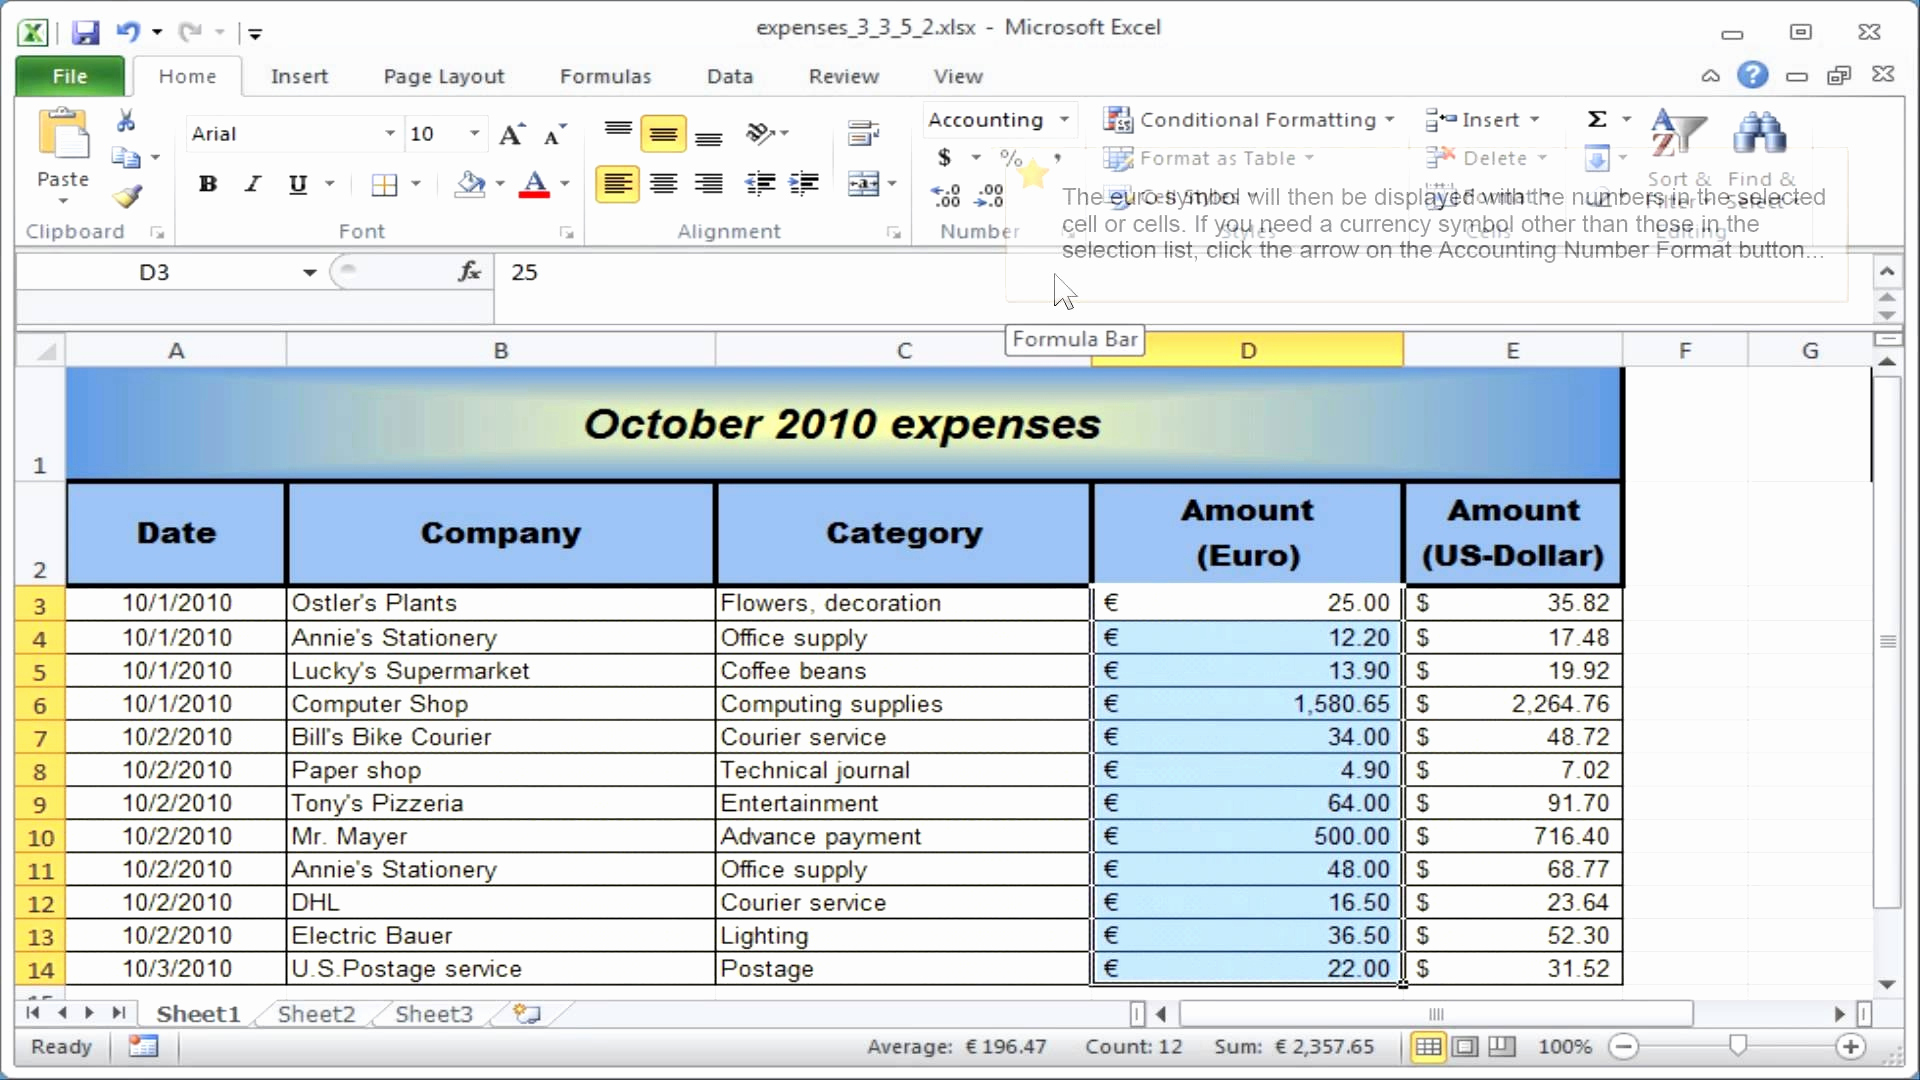 Document Of Accounts Payable And Receivable Template Excel In Accounts Payable And Receivable Template Excel Template